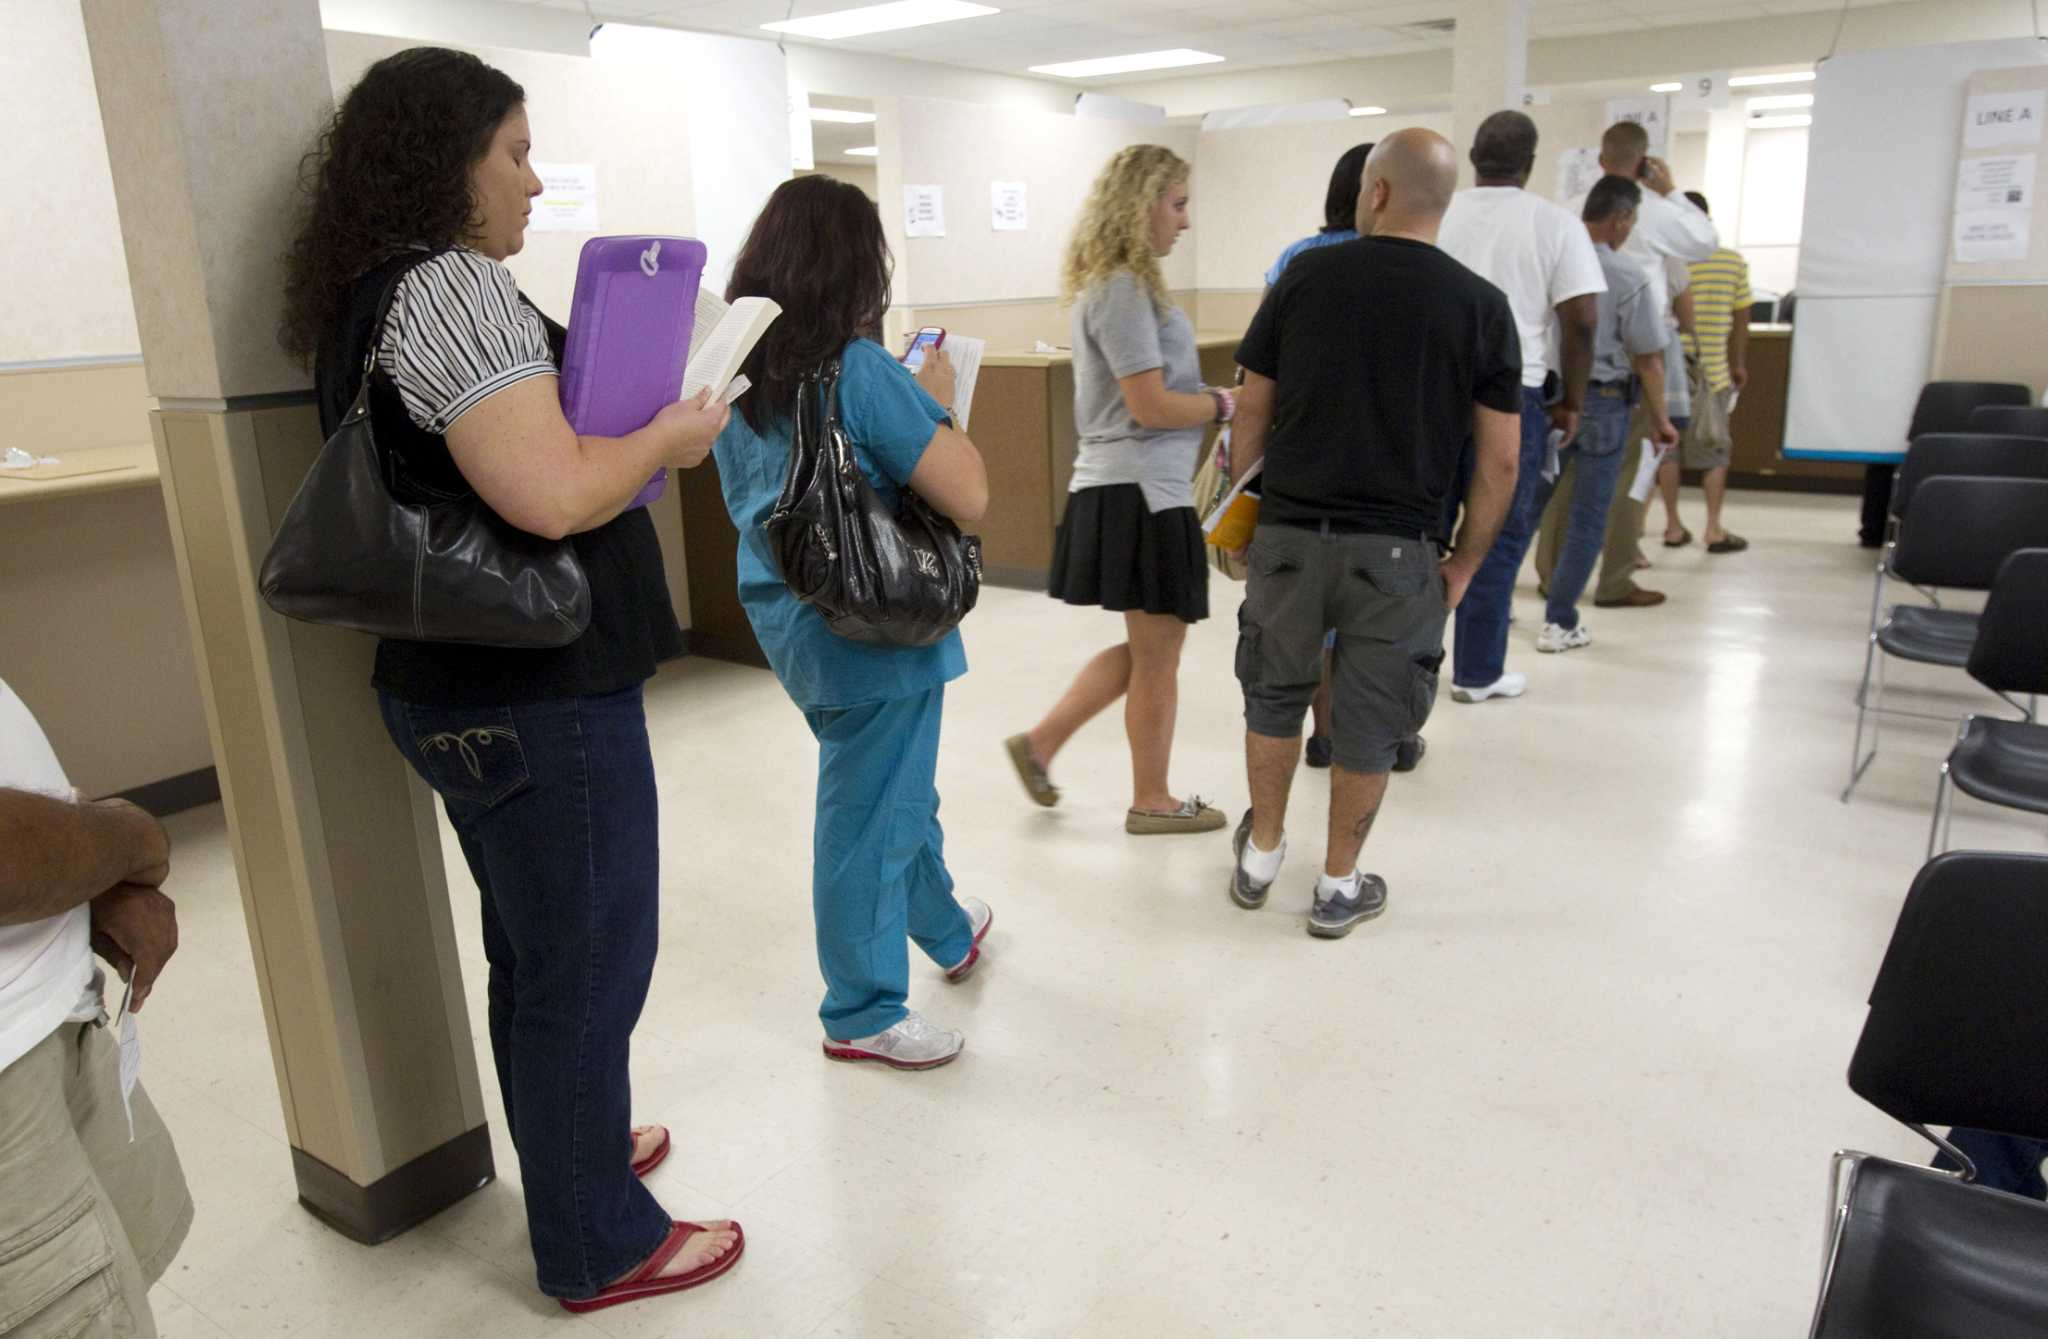 DPS continuing Saturday appointments to renew driver's licenses, IDs due to COVID-19